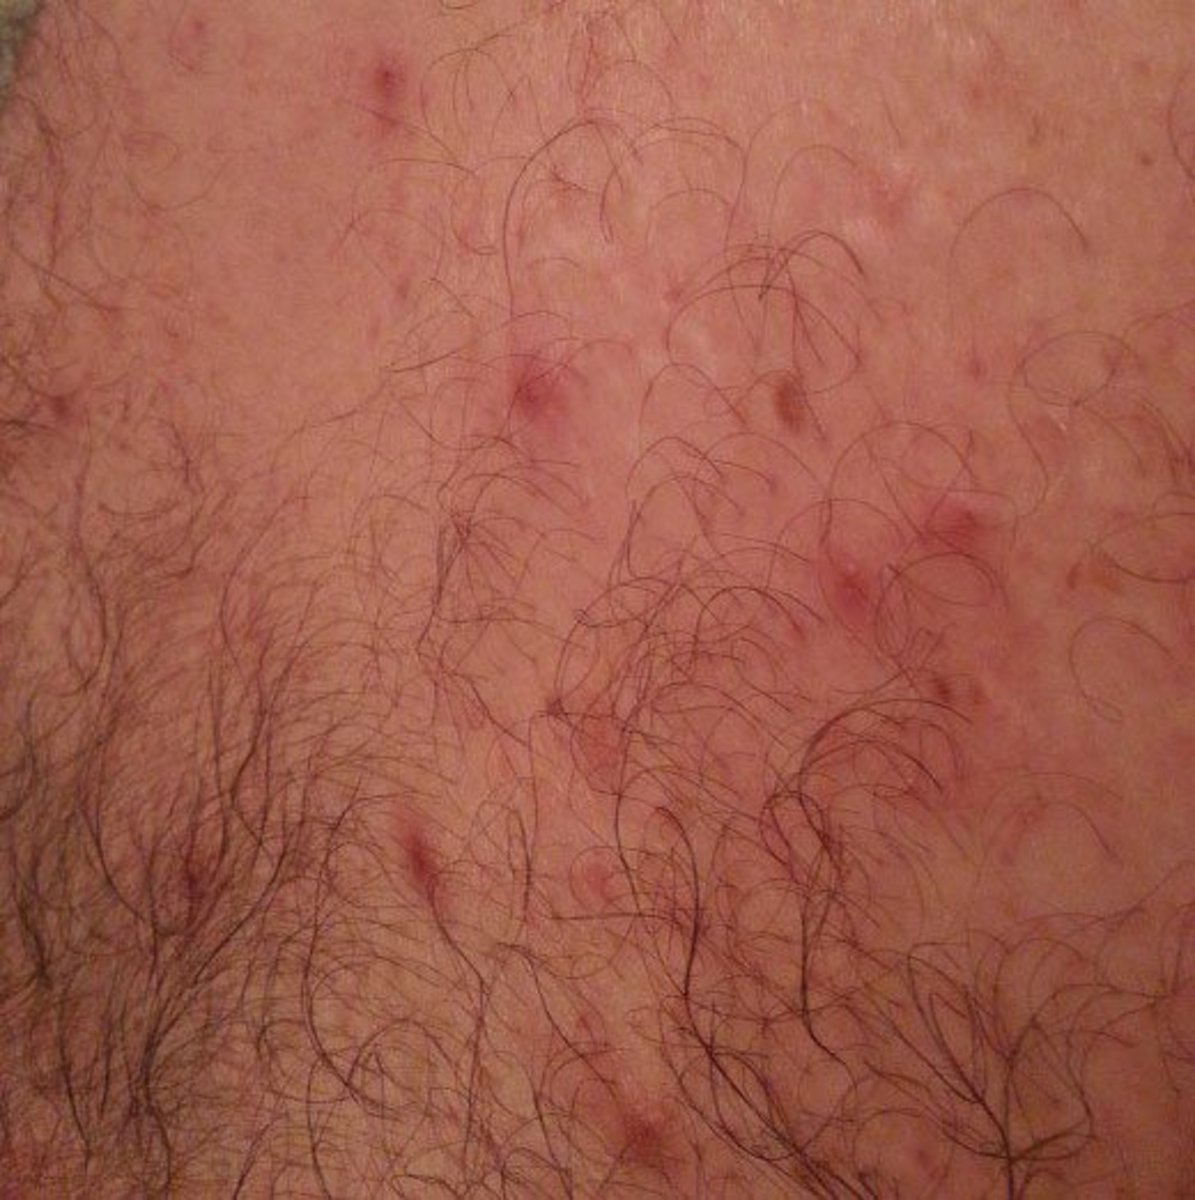 Tiny pimple-like clusters connected by silvery trails like these are where mites tunnel under the outer skin and leave an itchy, irritating rash.